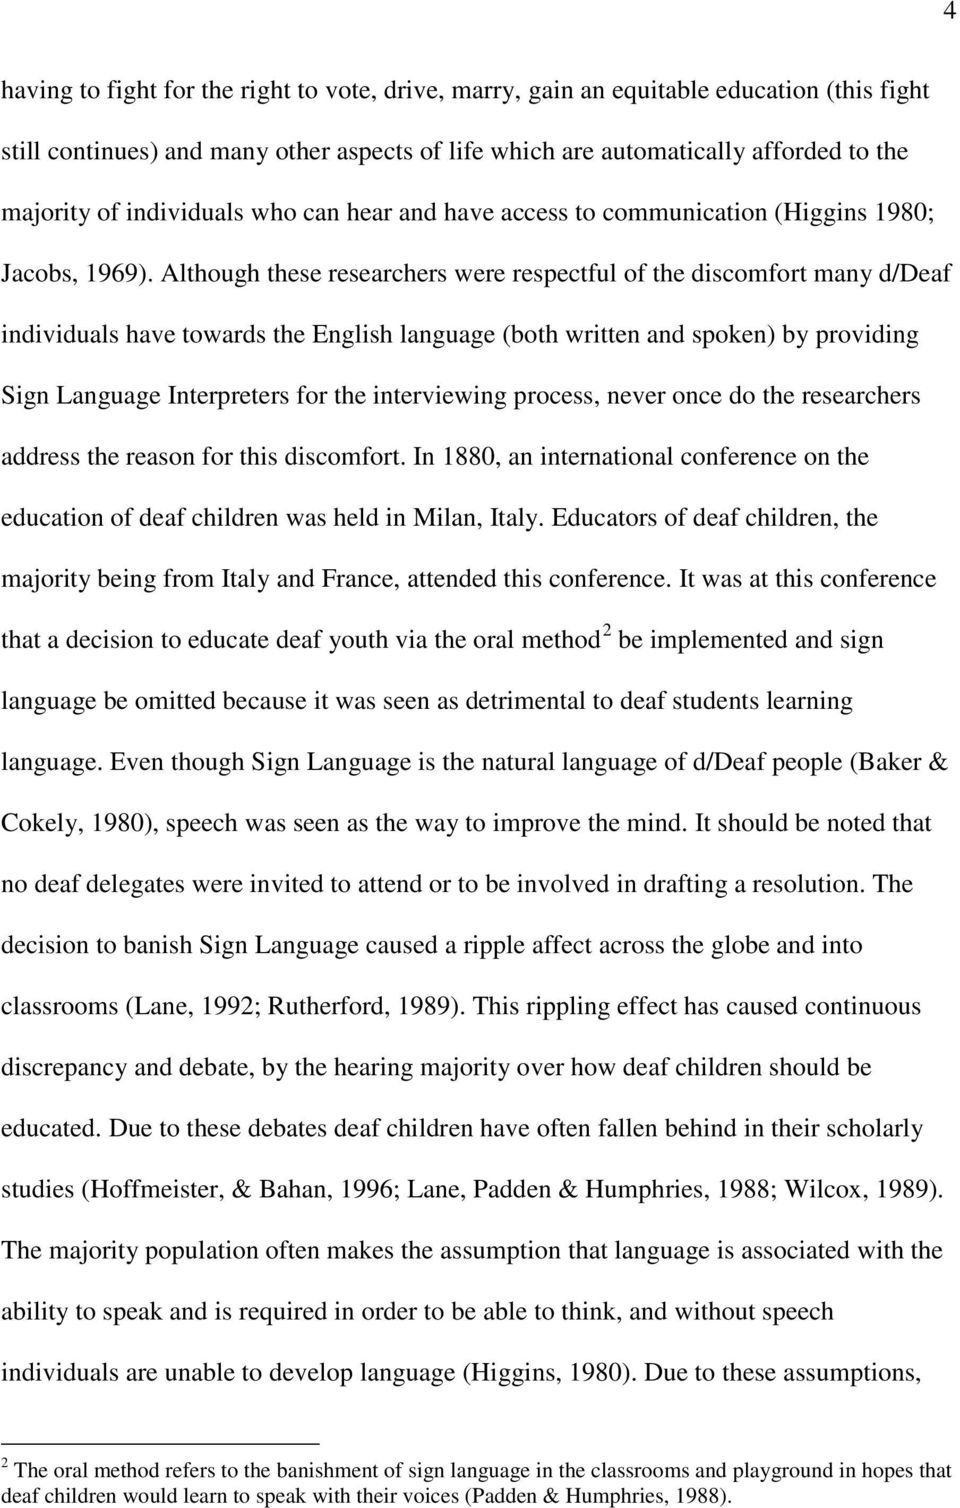 Although these researchers were respectful of the discomfort many d/deaf individuals have towards the English language (both written and spoken) by providing Sign Language Interpreters for the